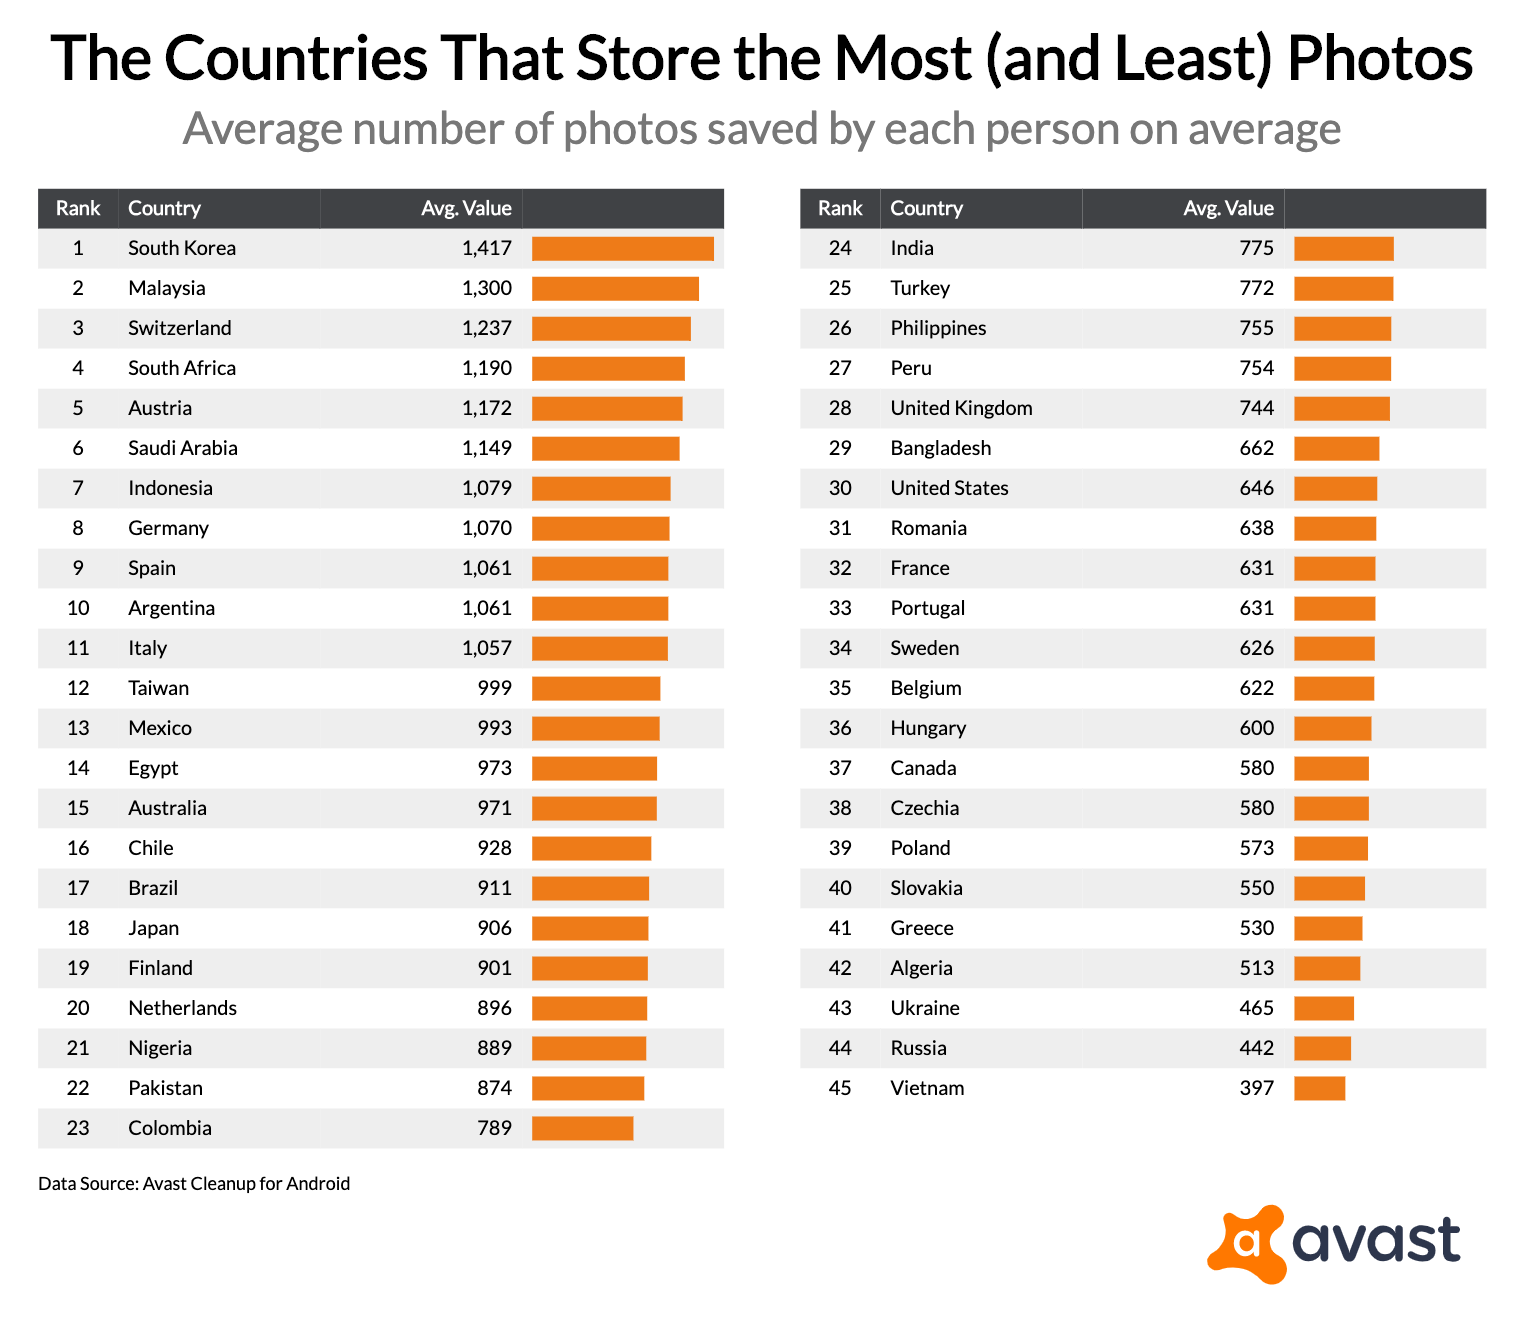 the-countries-that-store-the-most-and-least-photos_2019-09-26T21_17_28.427Z